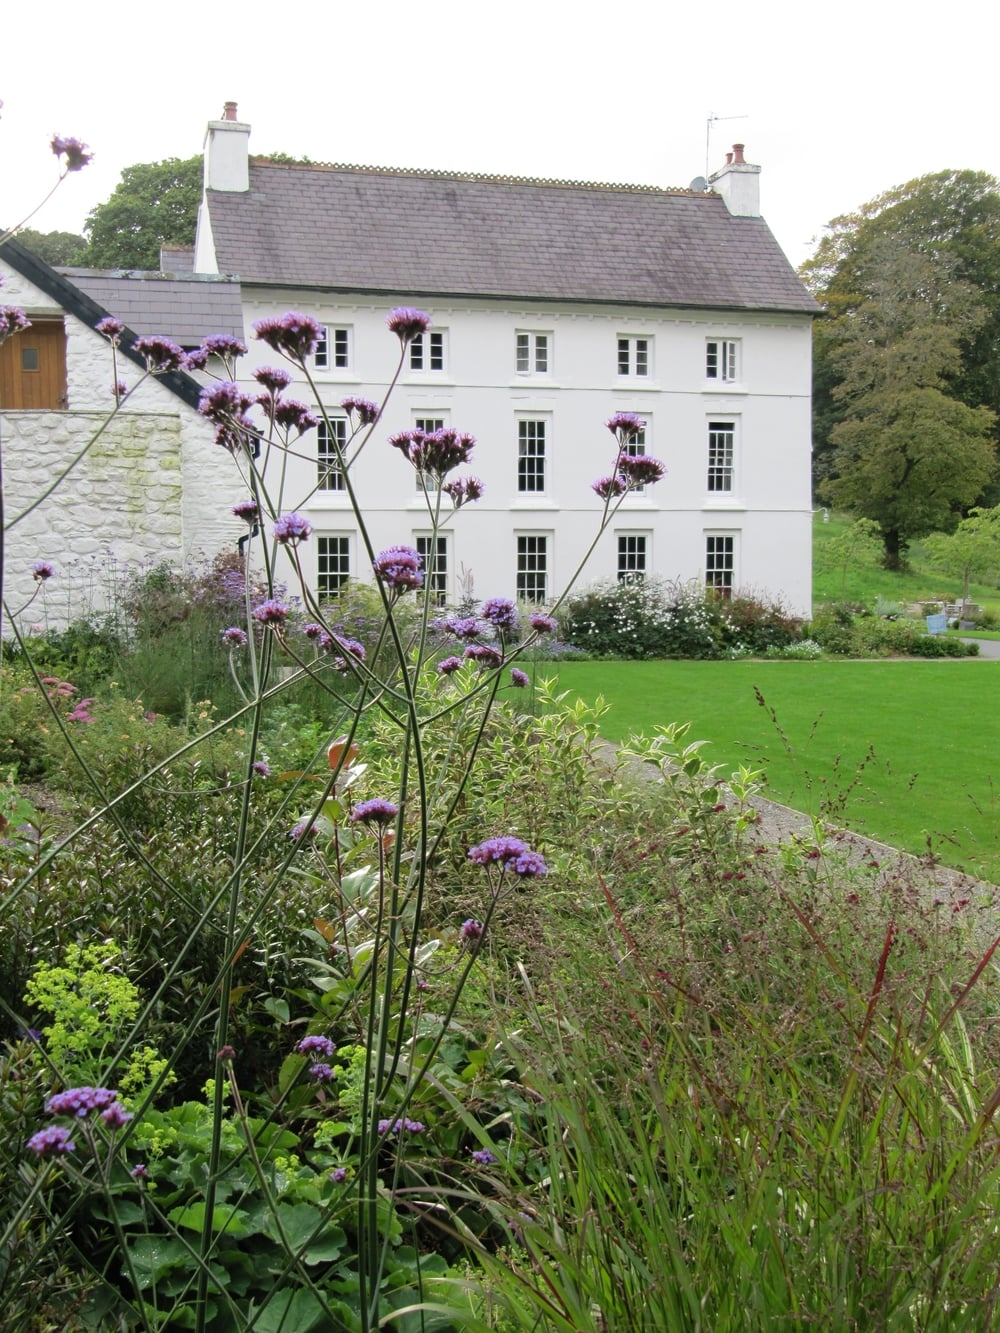 In a former country farmhouse, now a boutique hotel, the garden remains an important setting for the beautiful building and links it to the surrounding landscape.